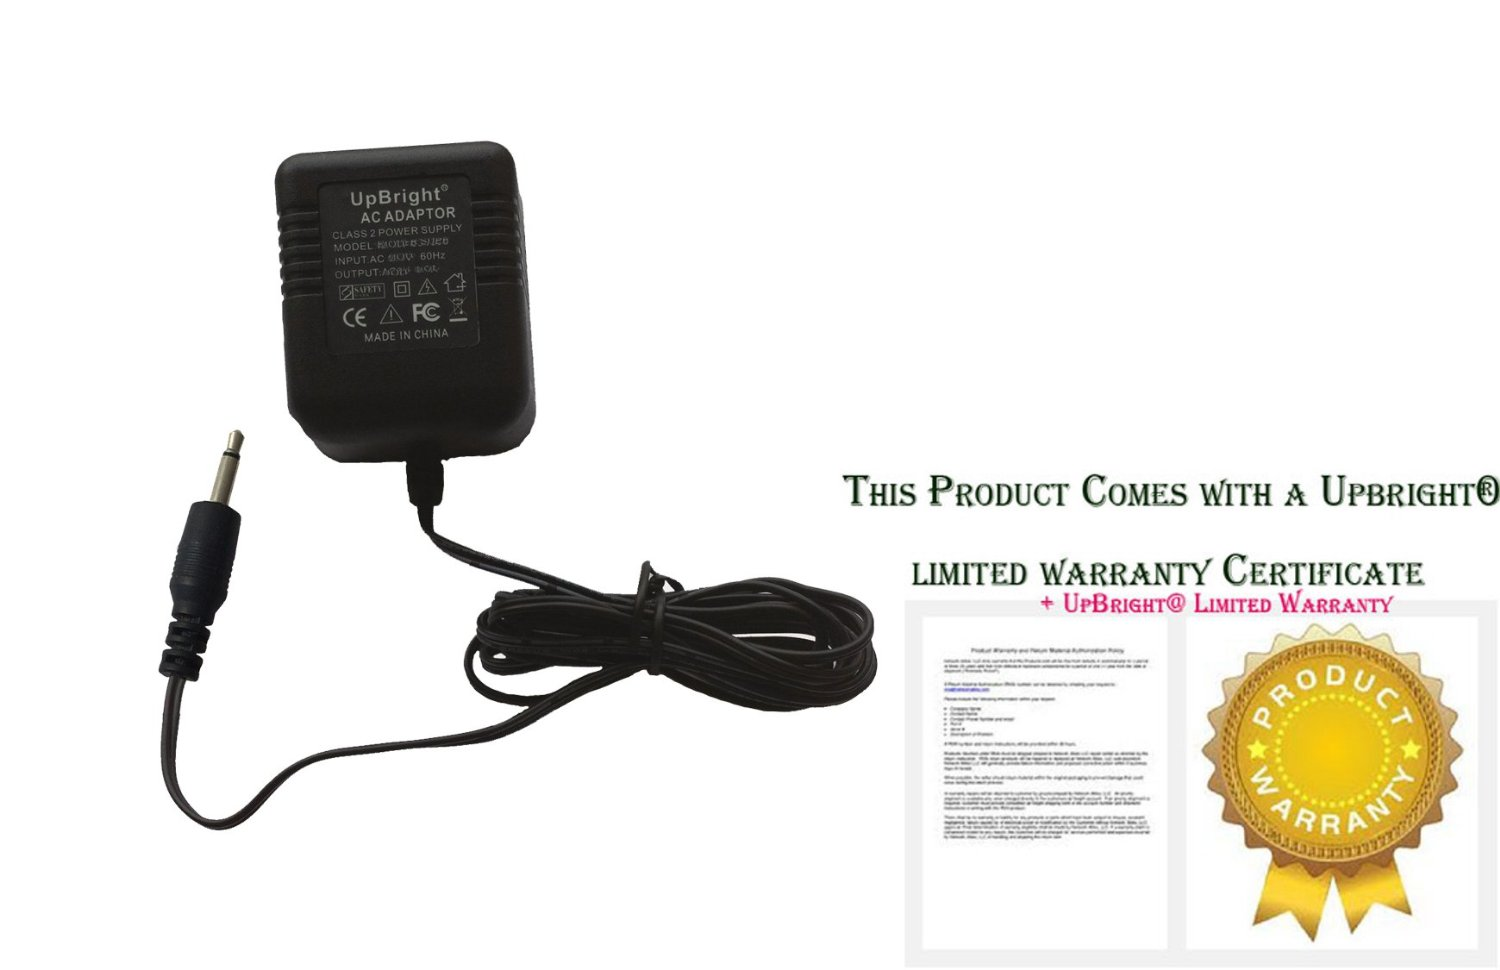 UpBright New 9V AC / AC Adapter For Alesis Micron SR-16 HR-16 D4 DM5 HR16 SR16 D 4 DM 4 DM 5 Drum Machine Mono Plug 9VAC Power Supply Cord Cable Charger Mains PSU (wit ear phone Mono Plug Type Tip adapter as the image. NOT barrel tip.)